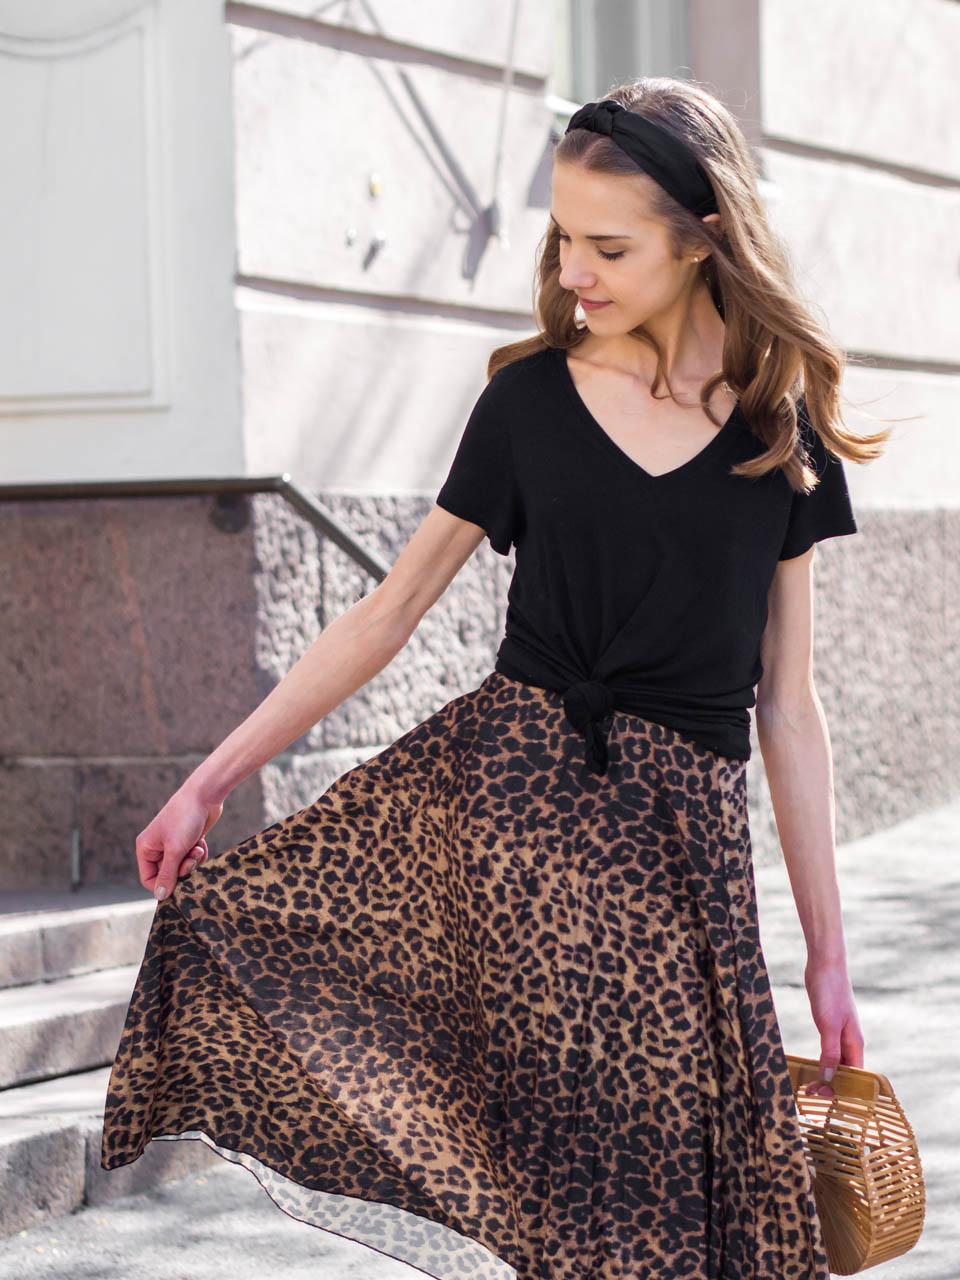 fashion-blogger-summer-outfit-leopard-midi-skirt-headband-cult-gaia-ark